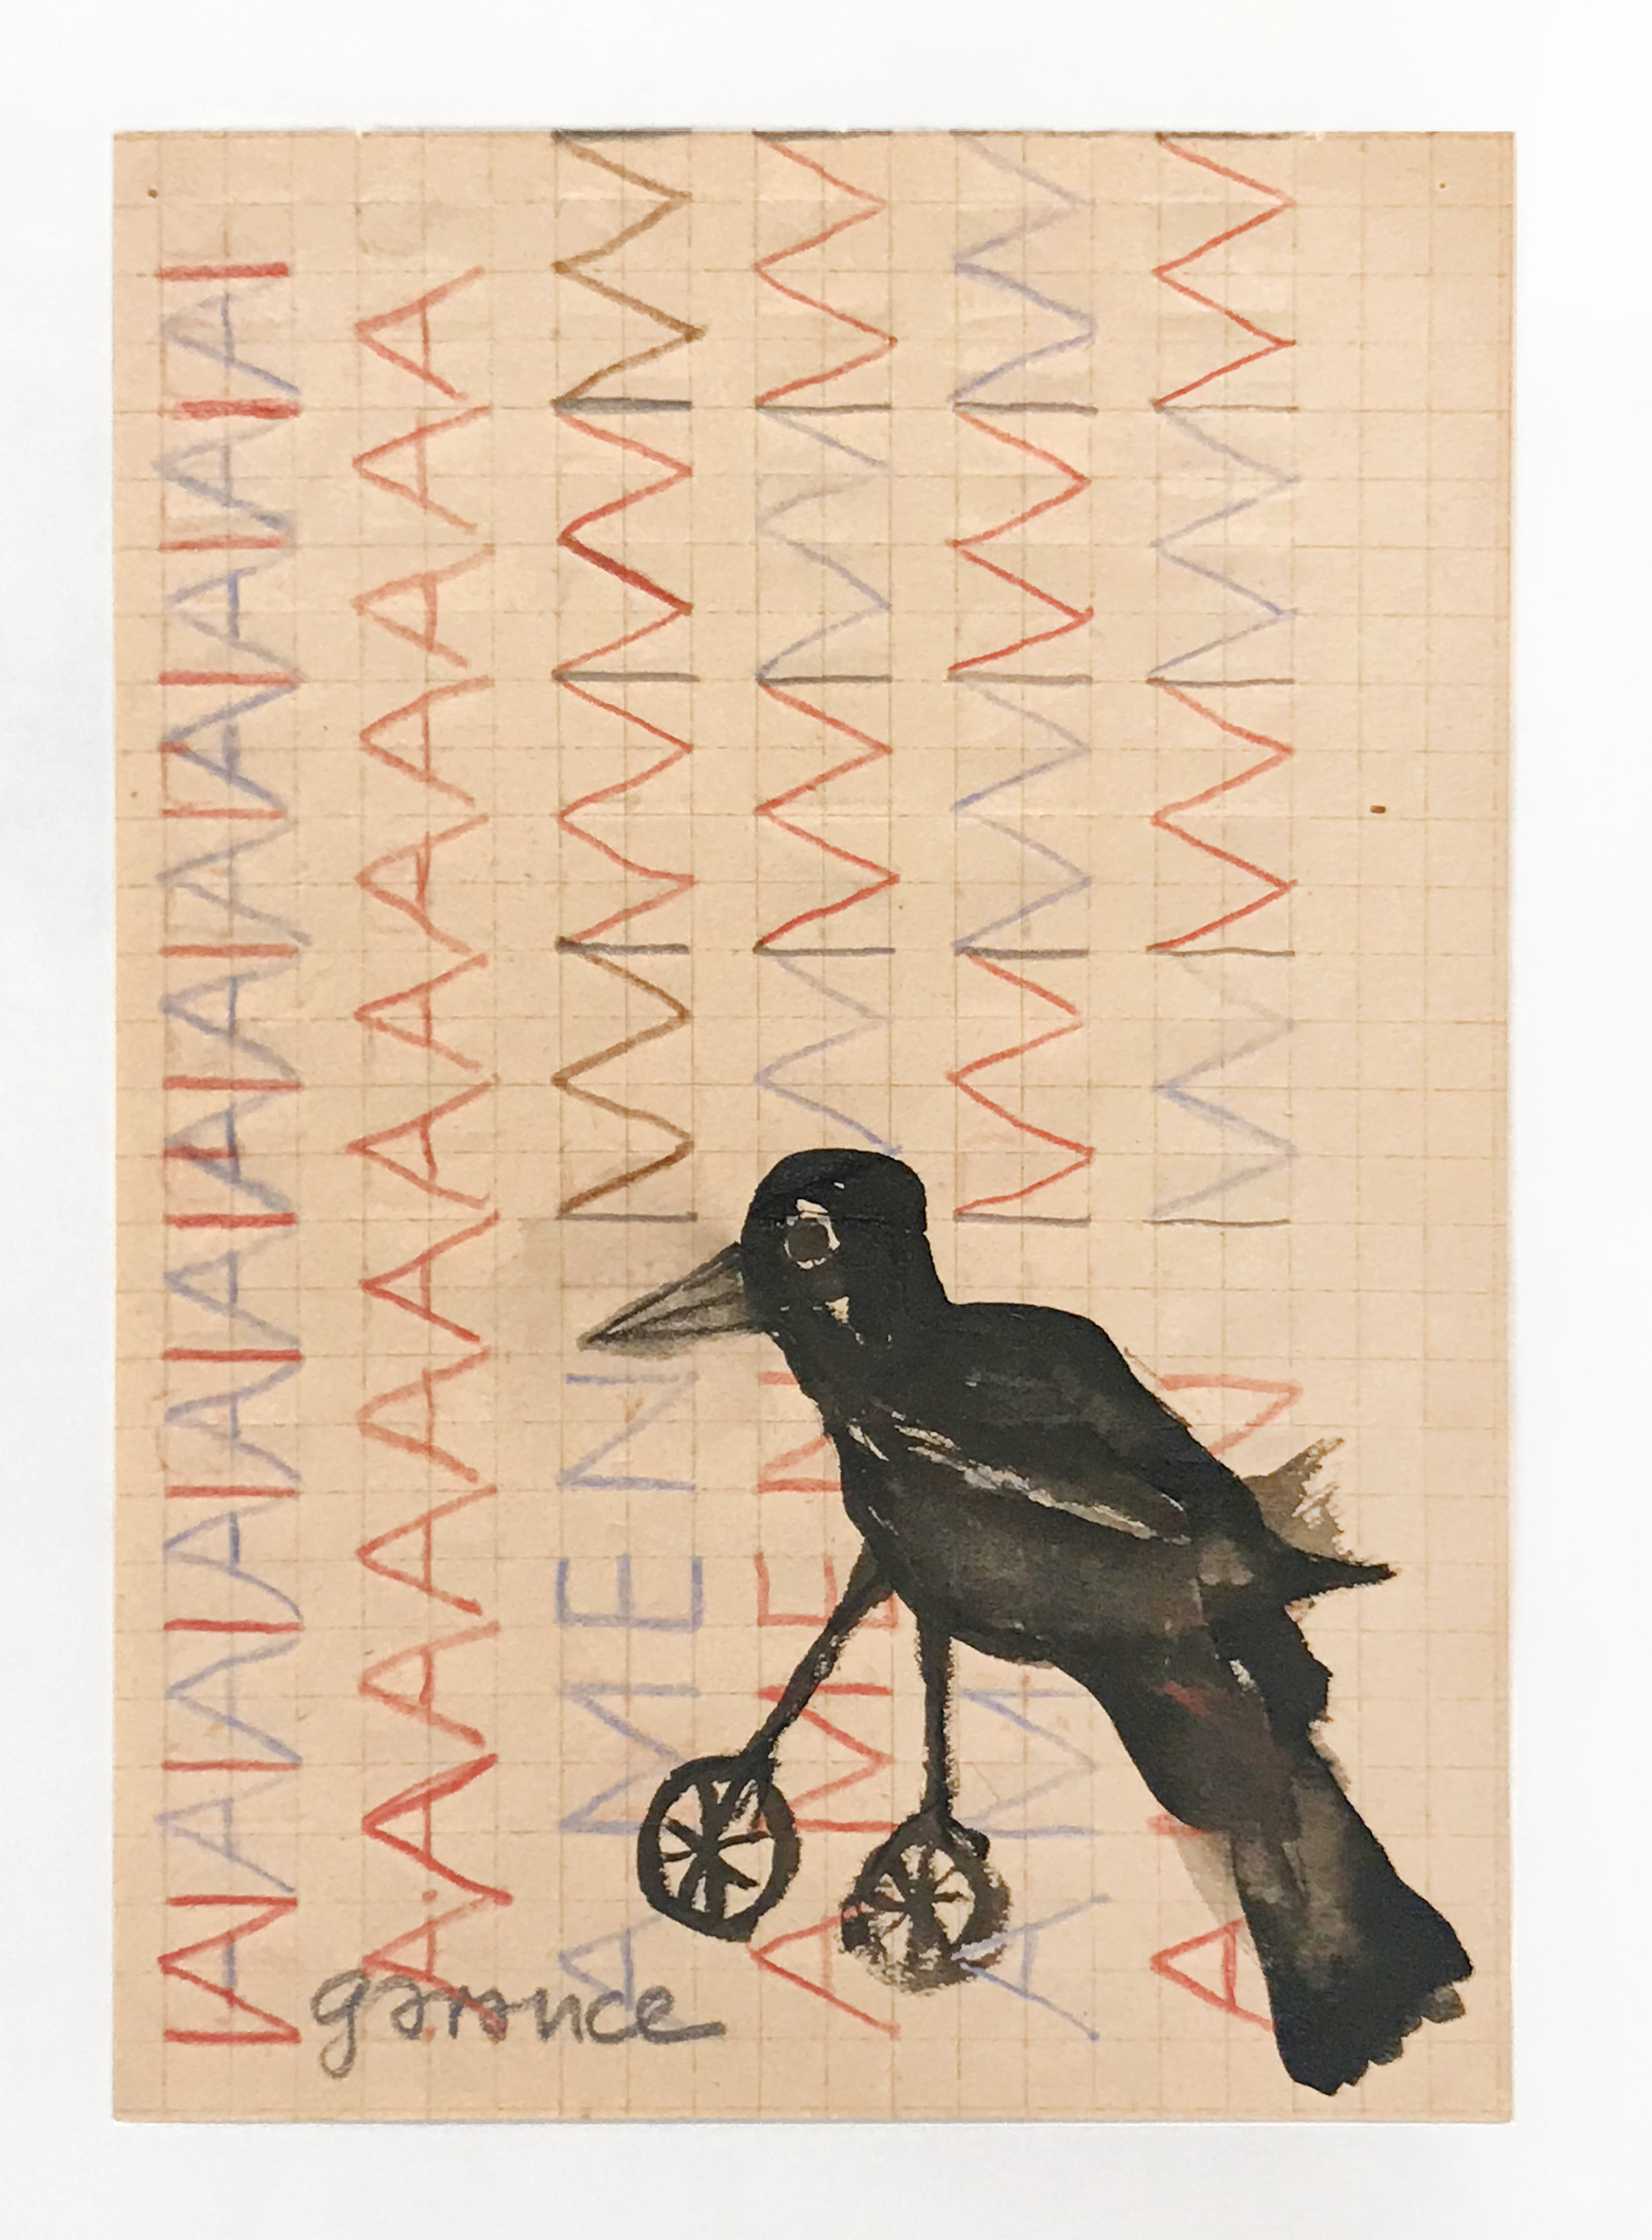 - AMEN/Bird with Wheels for Feetc. 2012Colored pencil and acrylic on paper8 x 5 3/4 inches